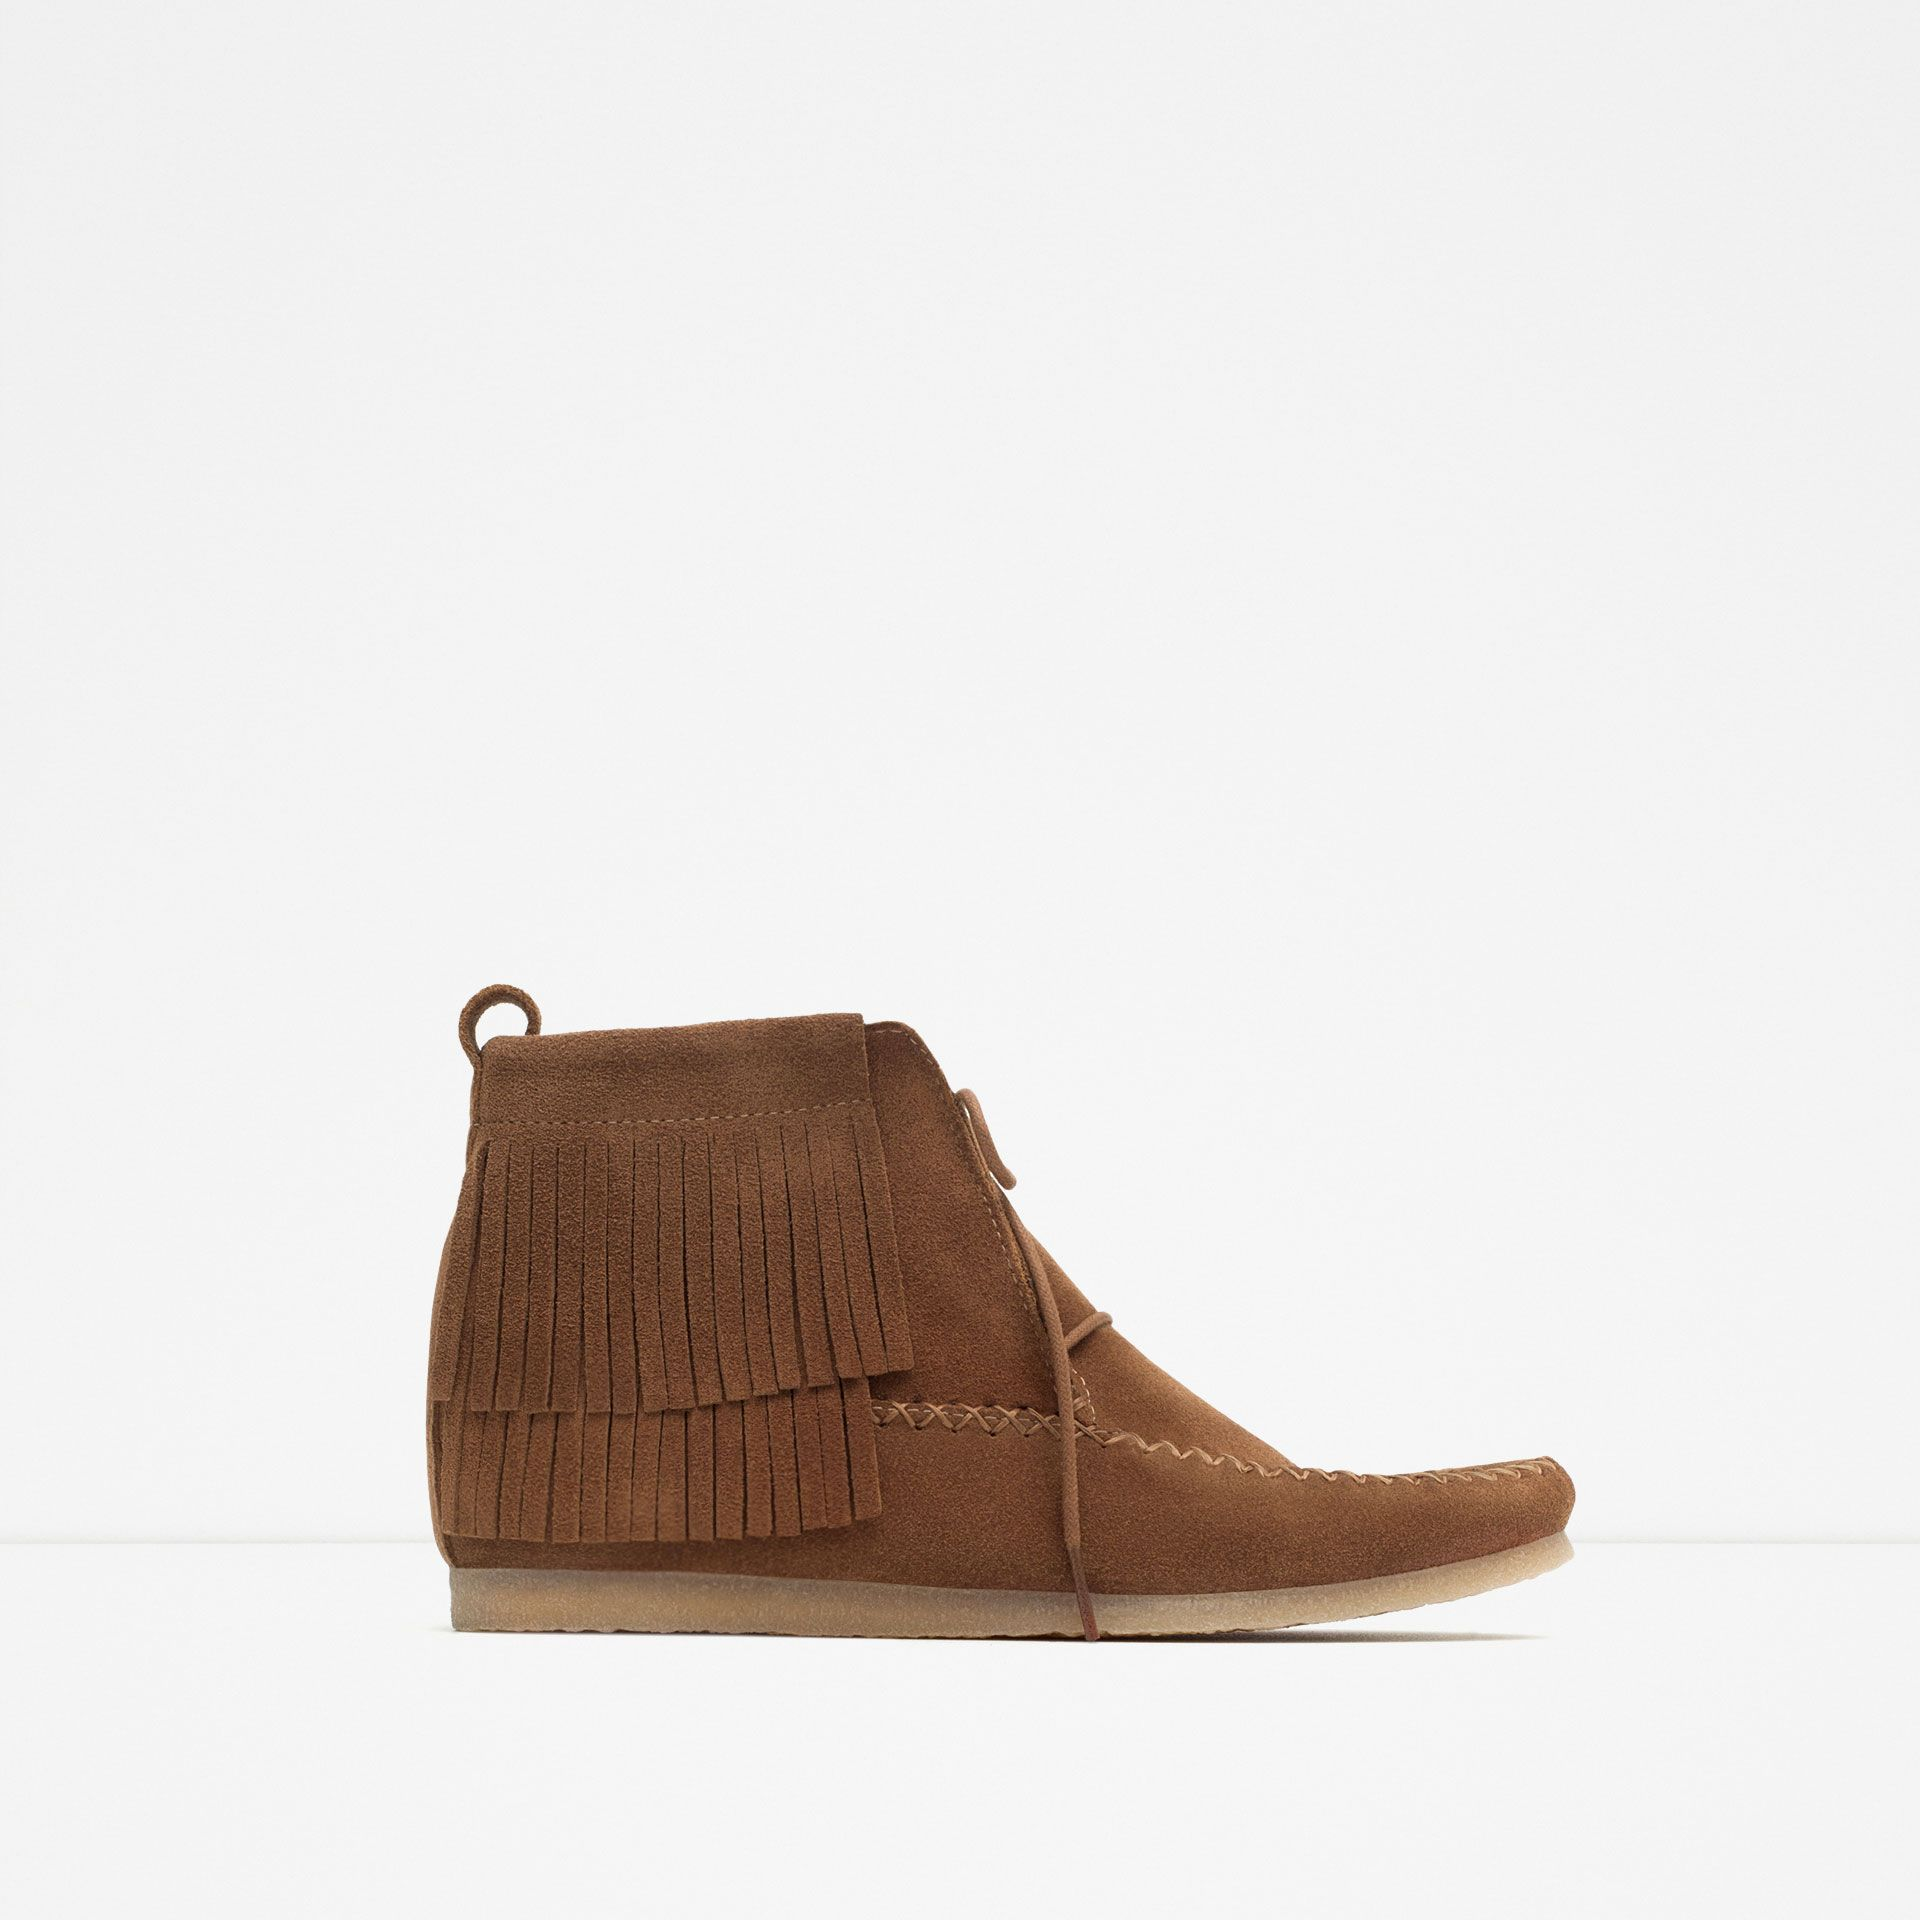 ZARA - WOMAN - LEATHER FLAT BOOTIE WITH FRINGE